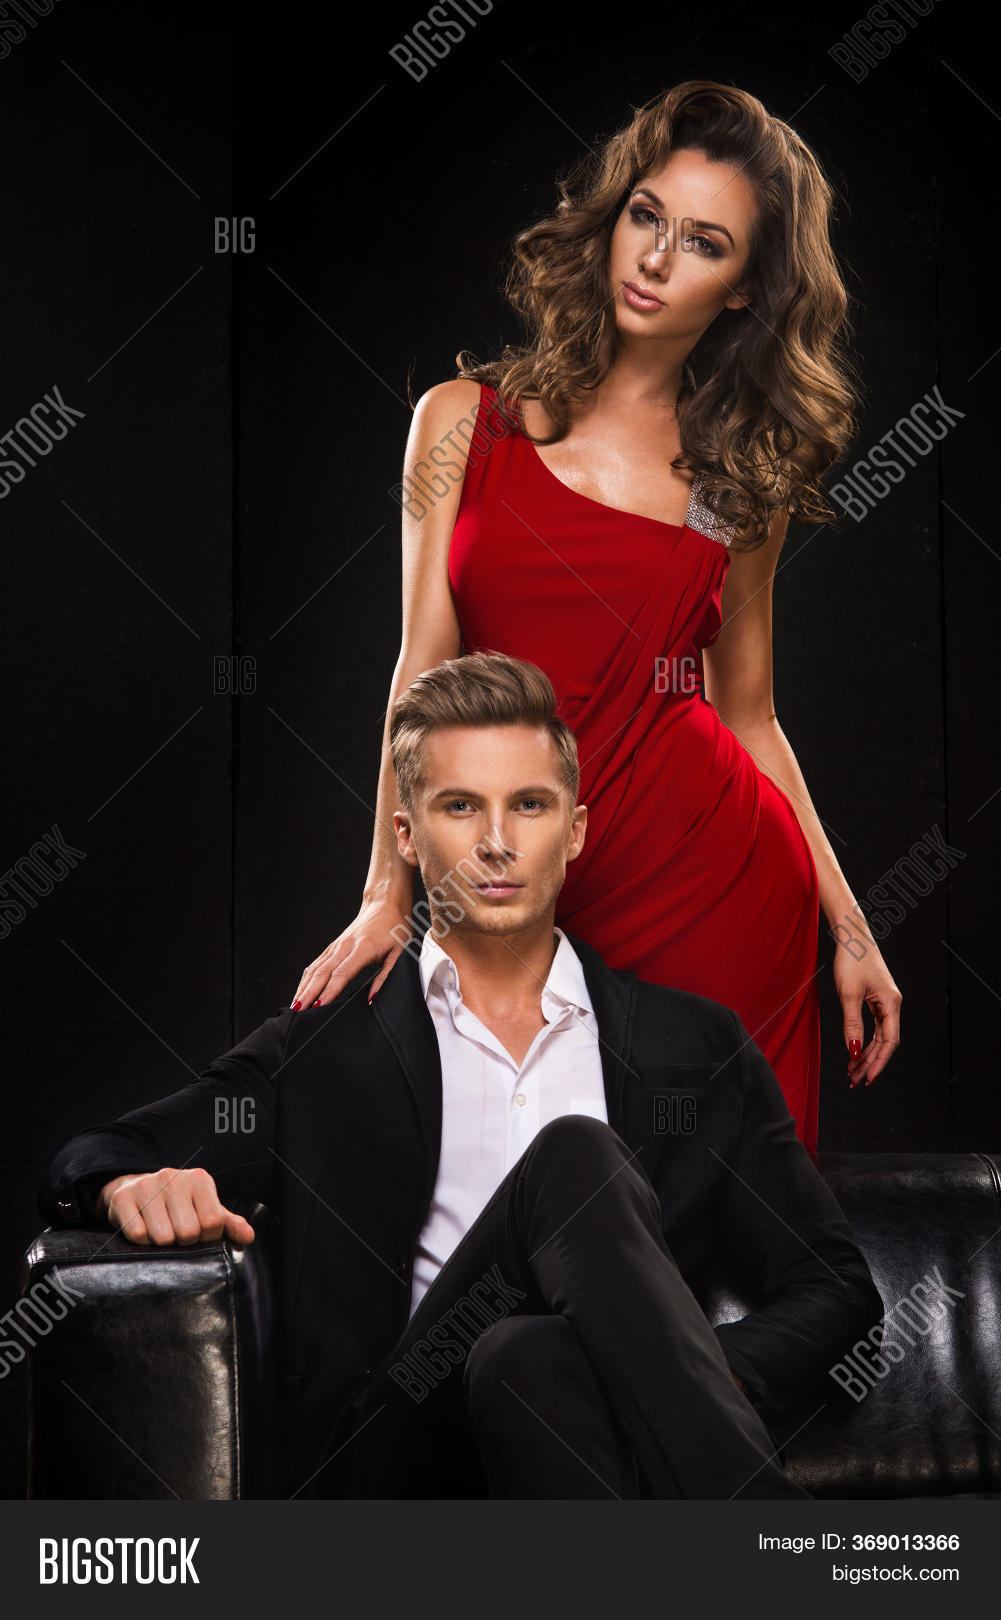 Elegant Couple. Woman In Red Dress And Man In Black Suit